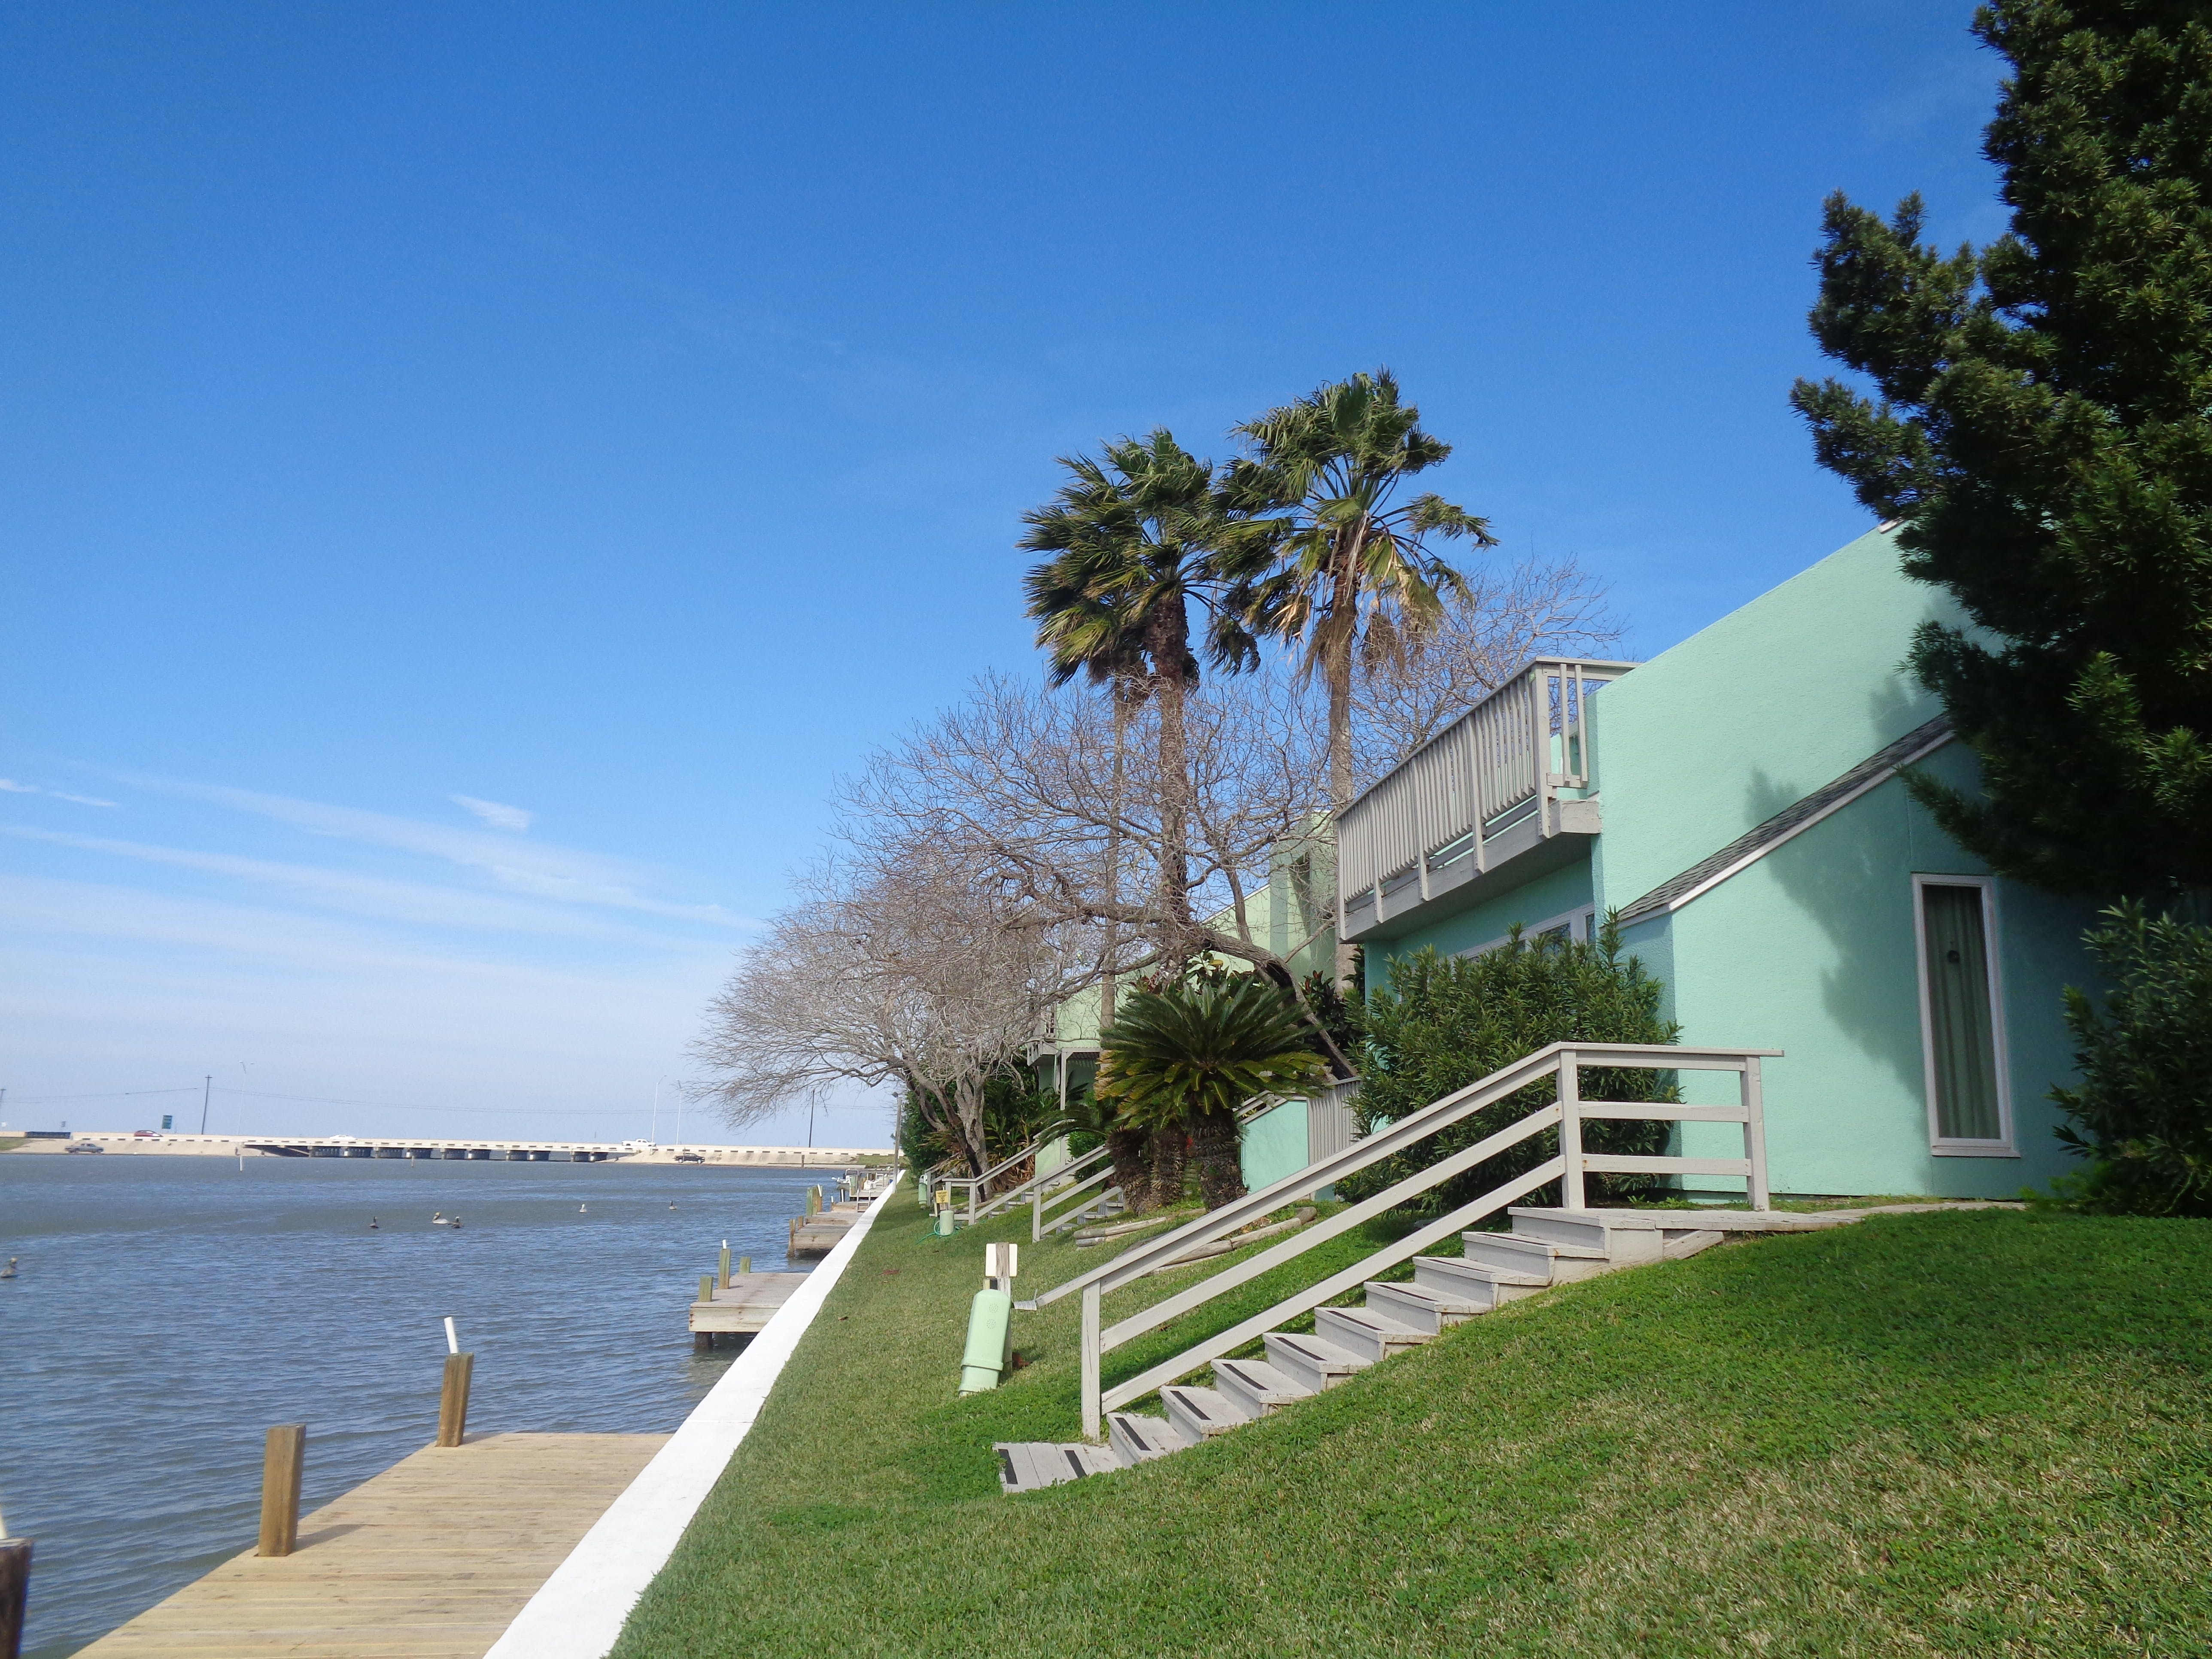 Puente Vista - Bay Side View